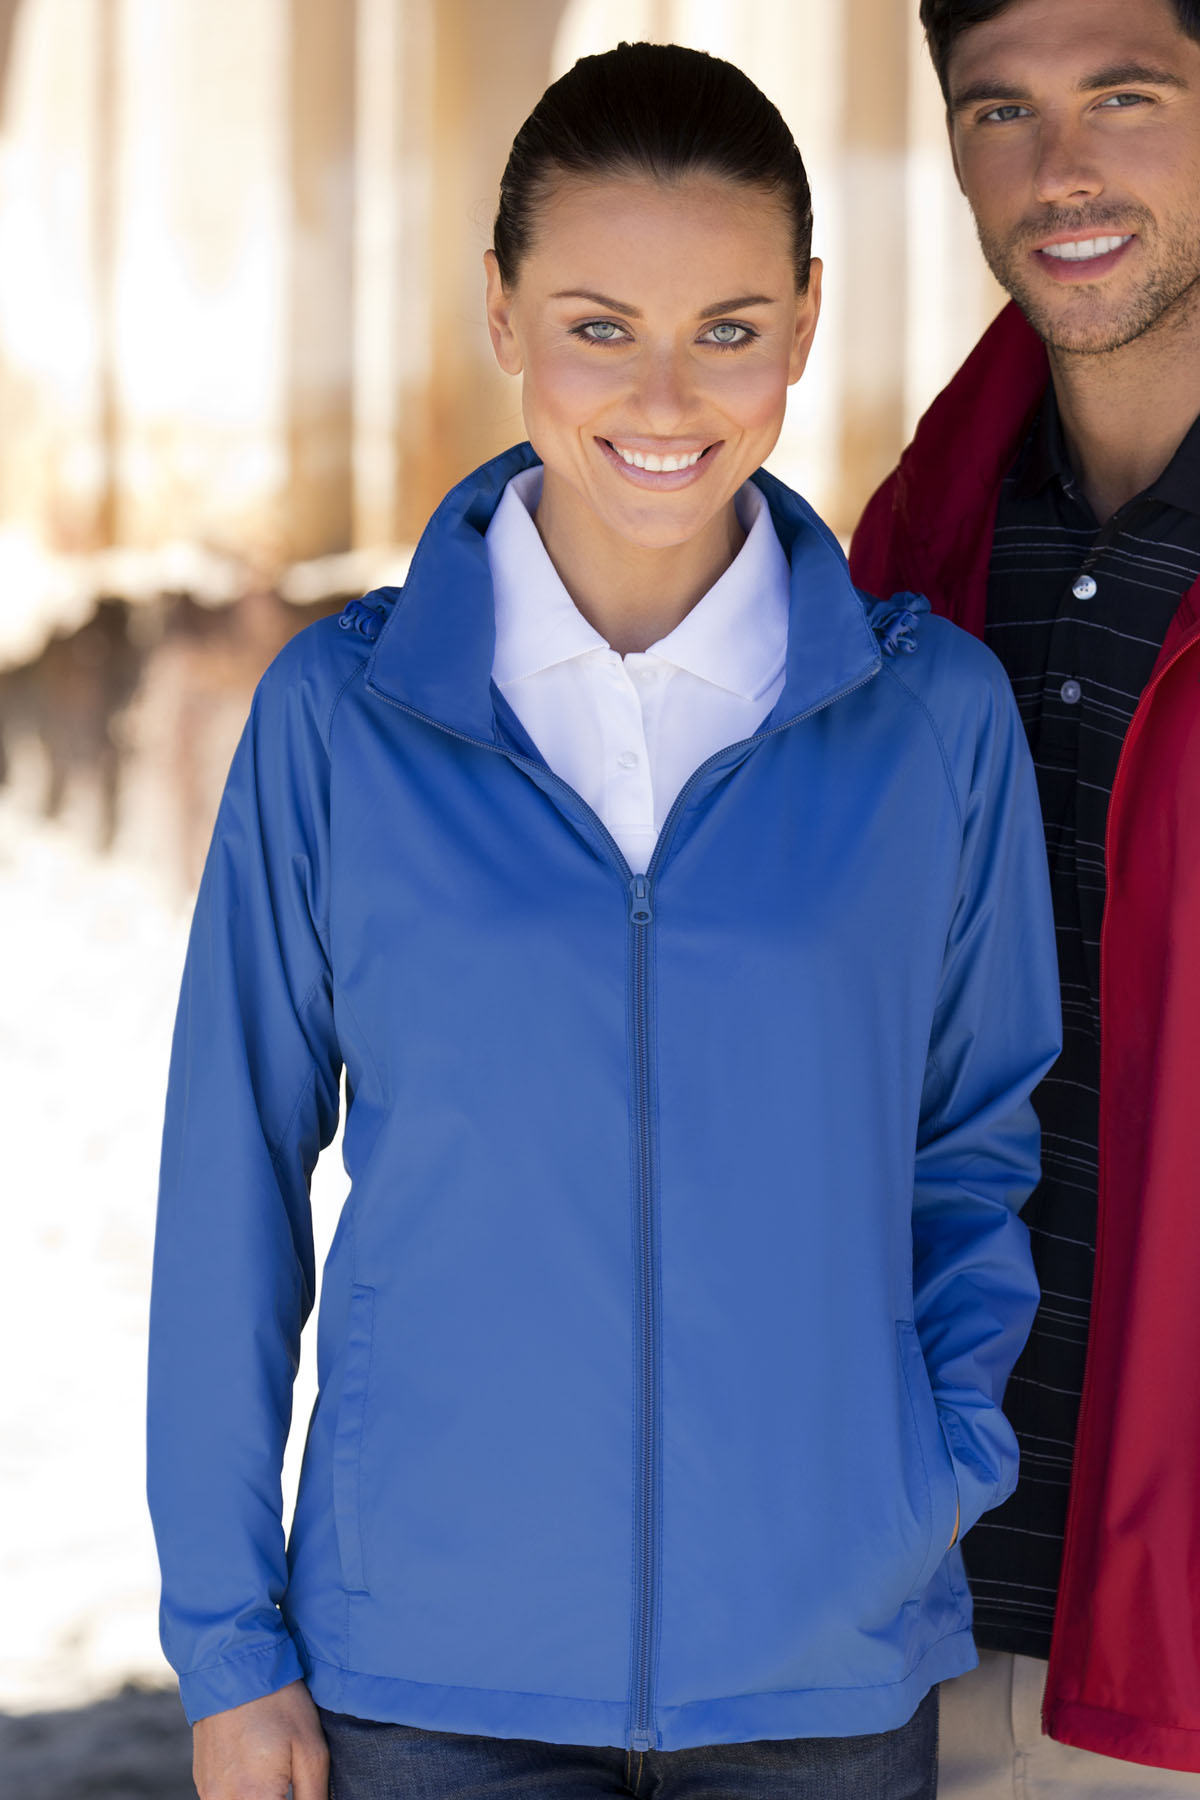 Vantage 7071 - Women's Full-Zip Lightweight Hooded Jacket